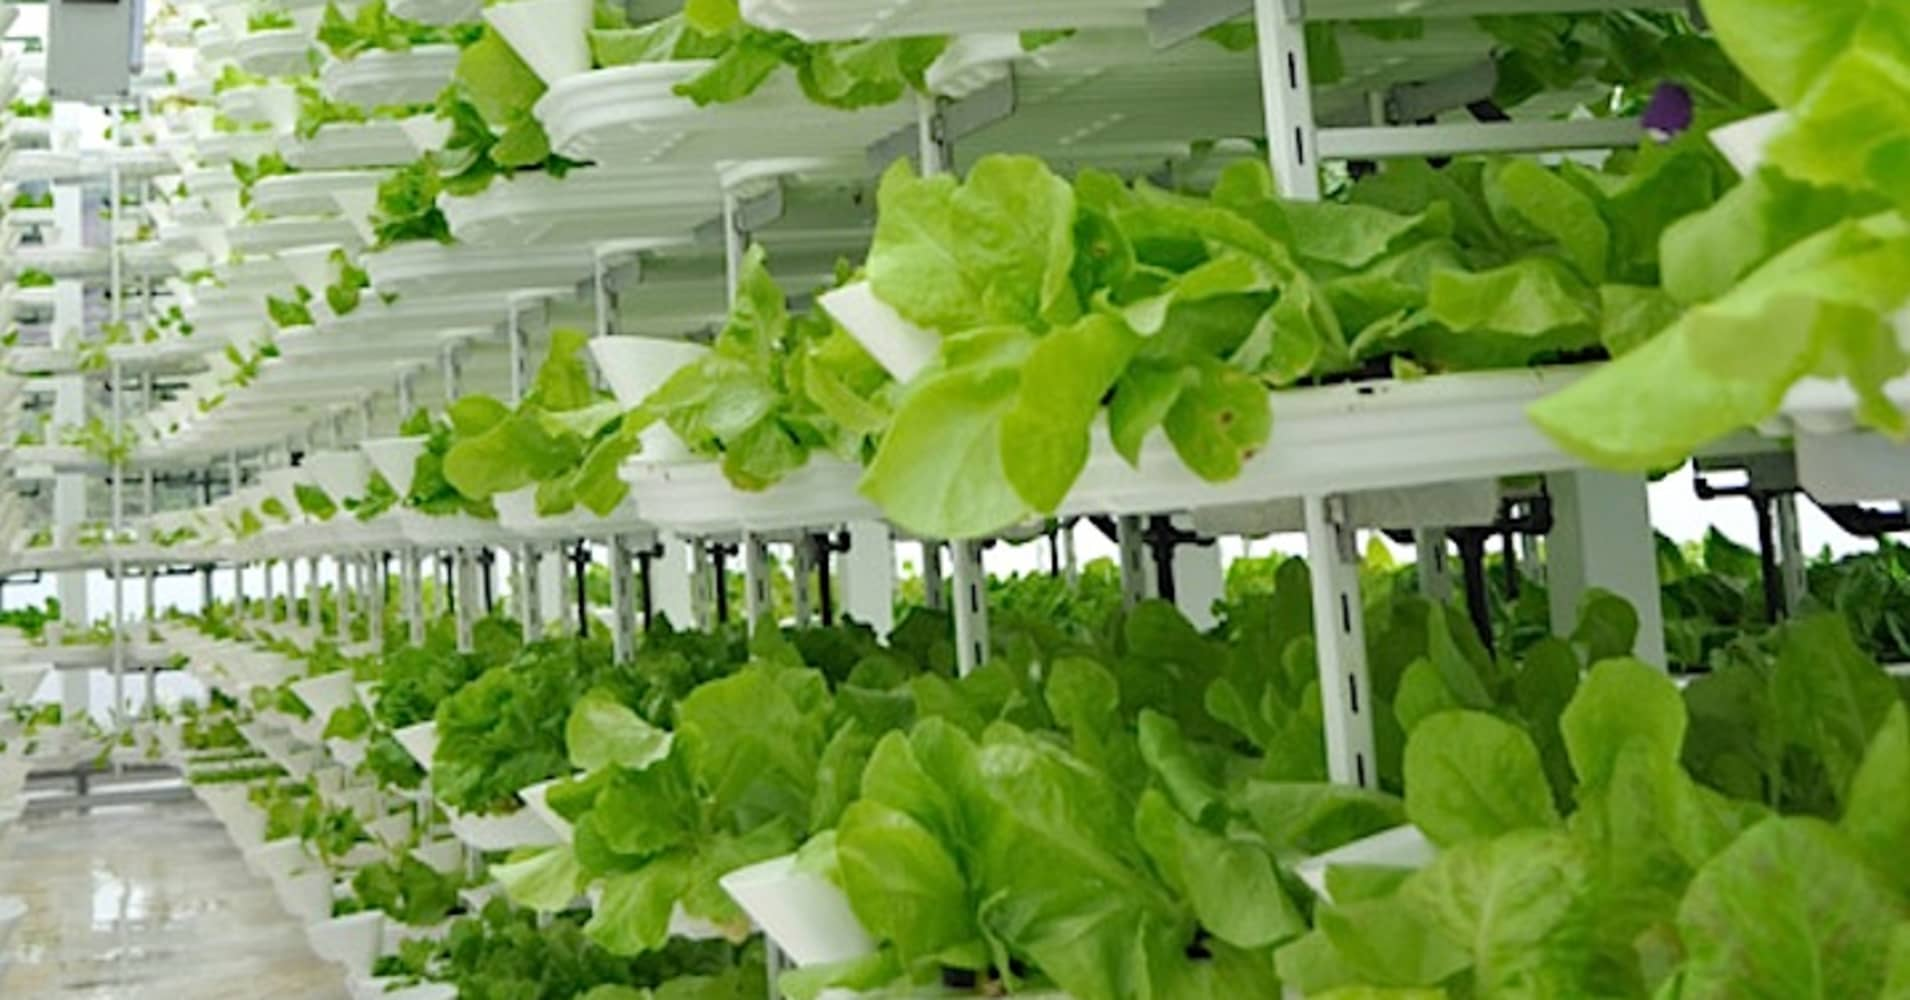 Vertical Farming A Hot New Area For Investorscommentary